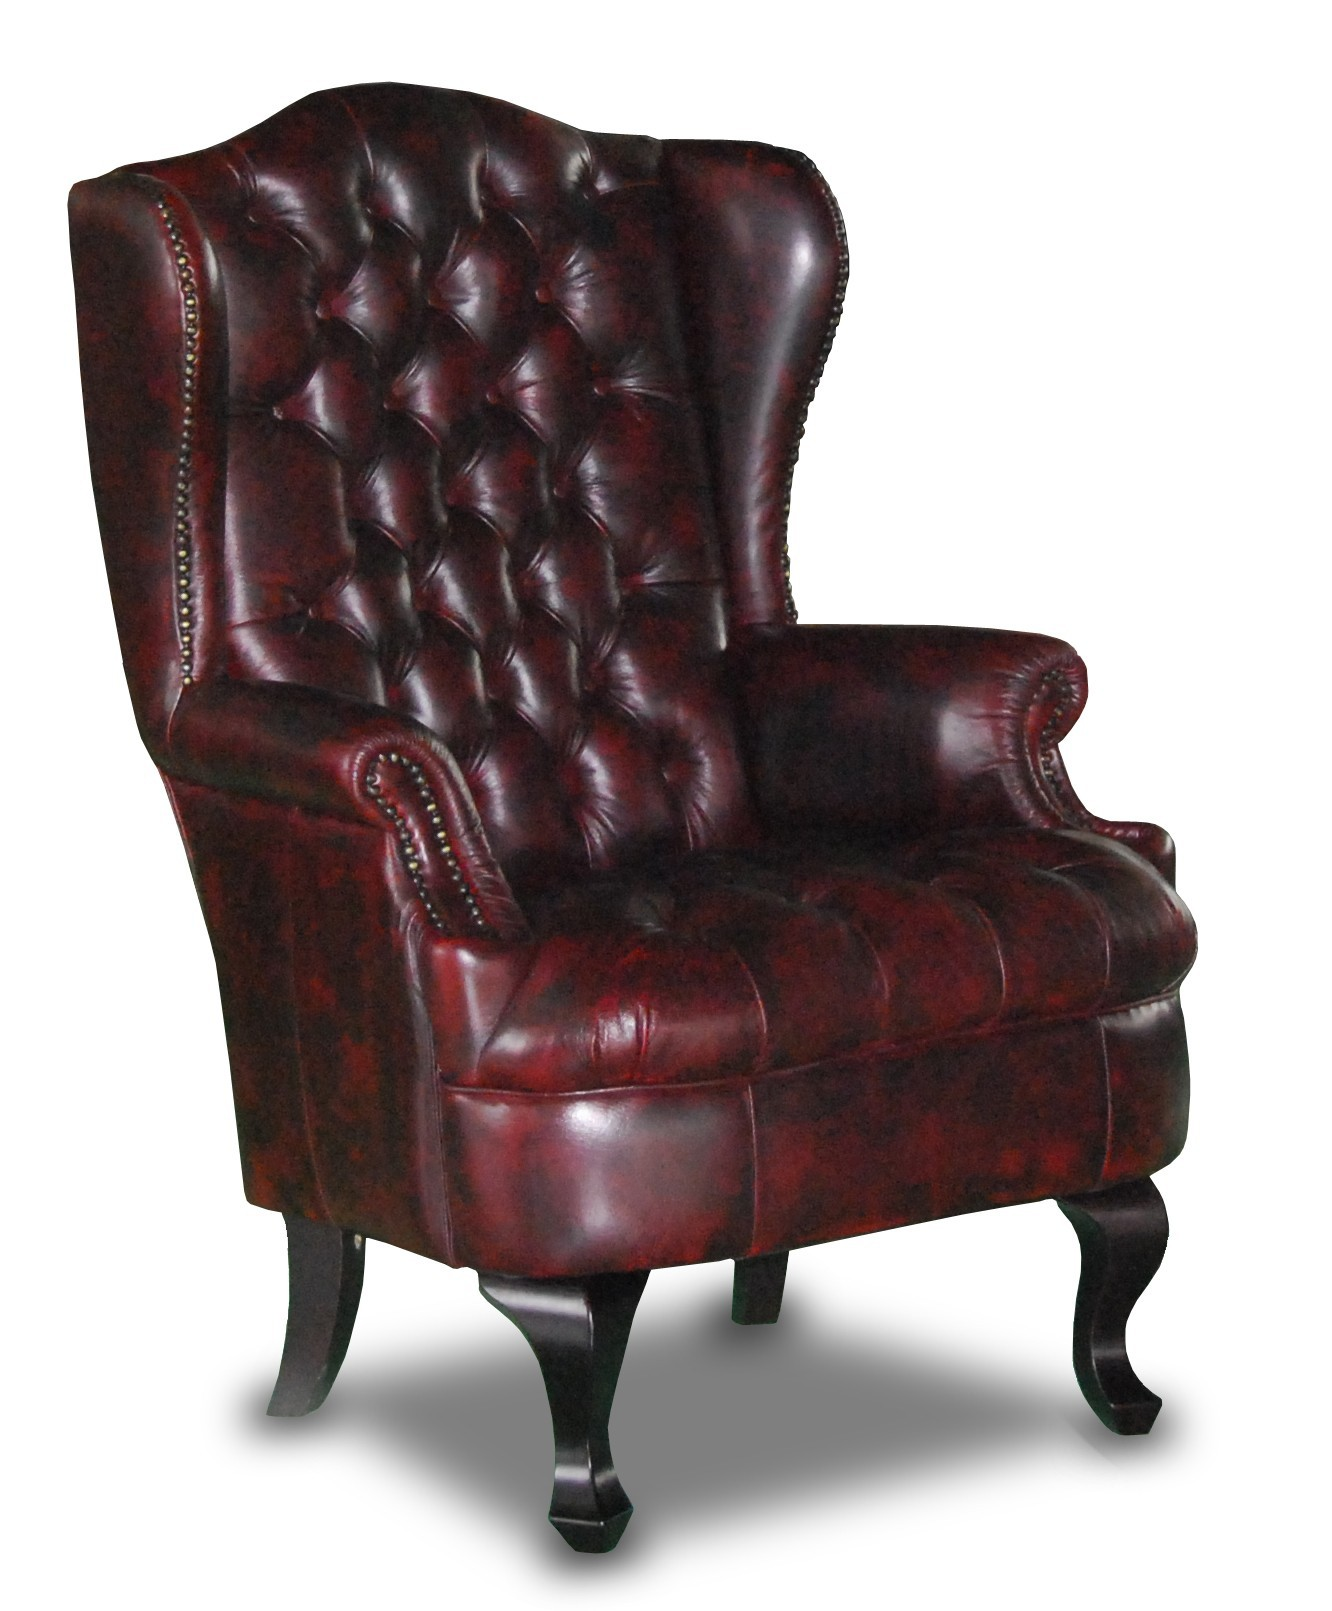 Nadia Wing Chair in red leather